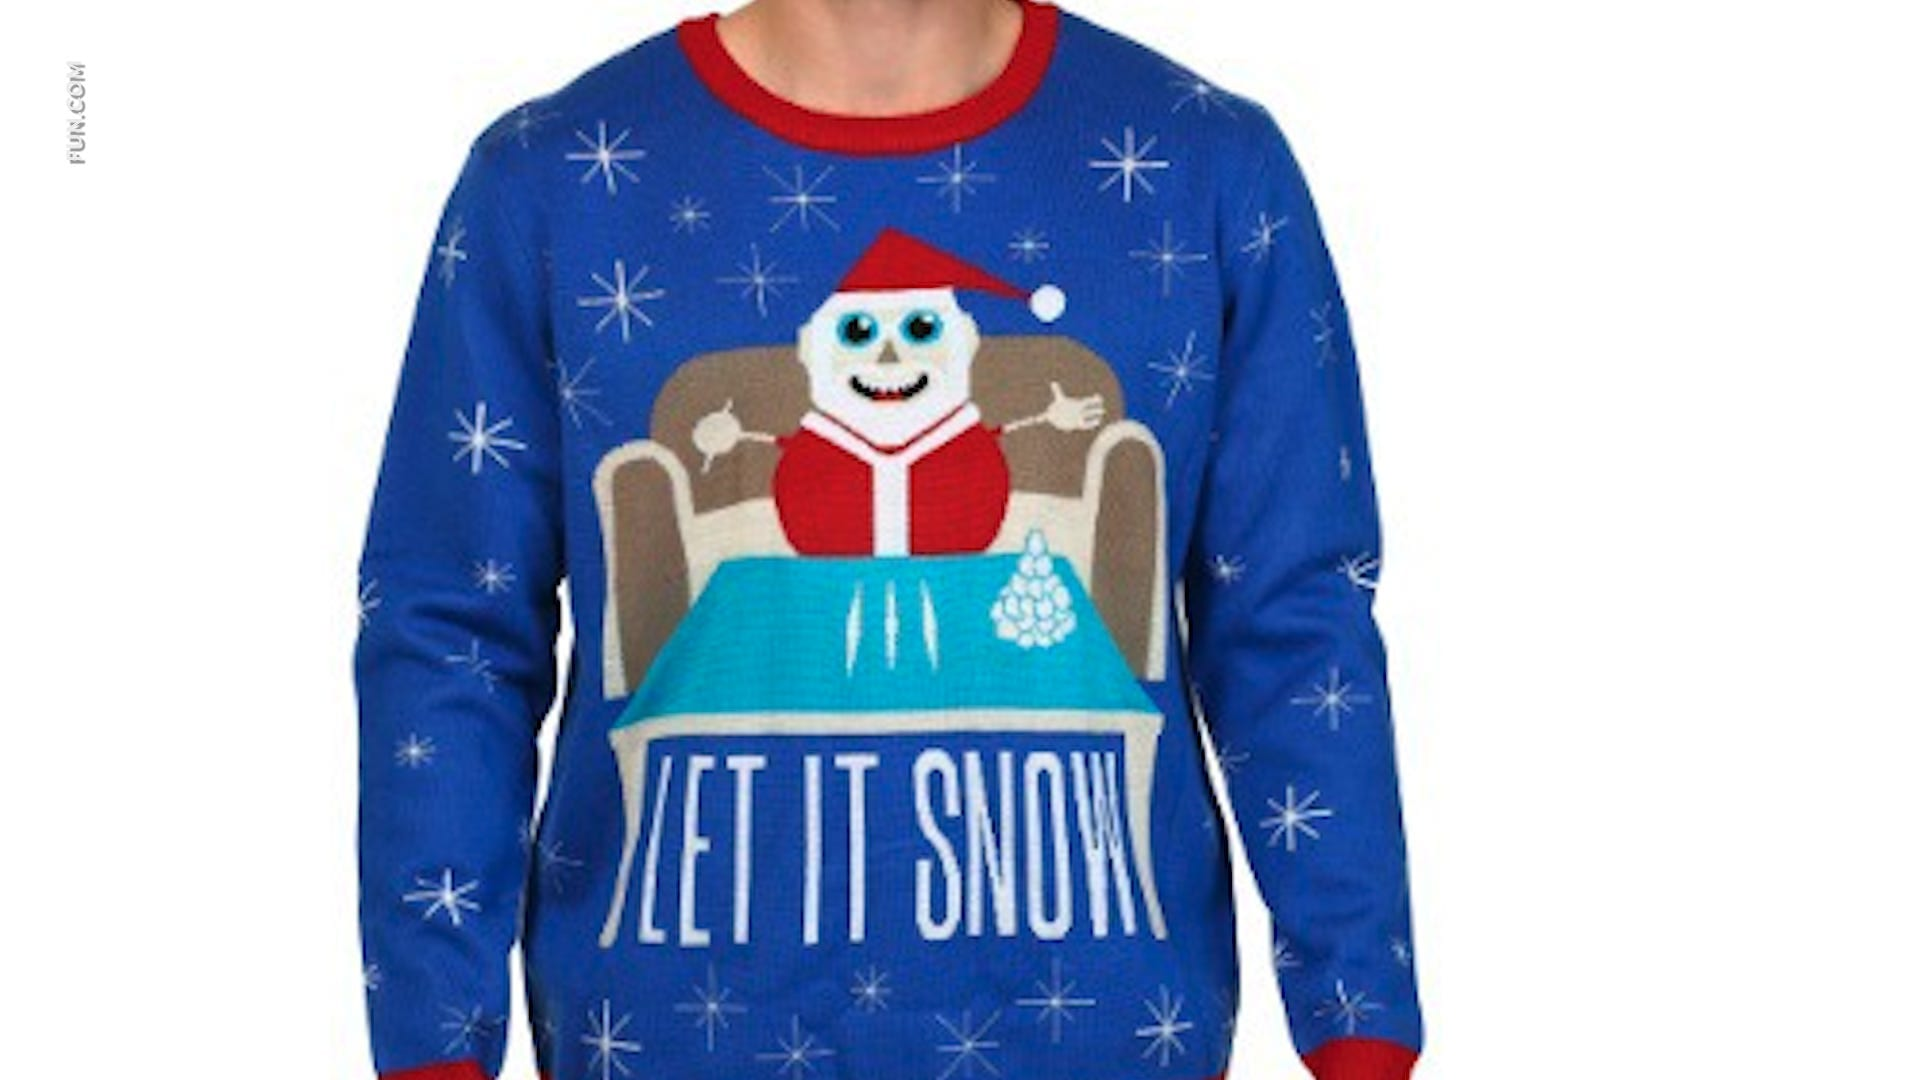 Walmart Canada pulls 'Let It Snow' sweater with Santa, cocaine